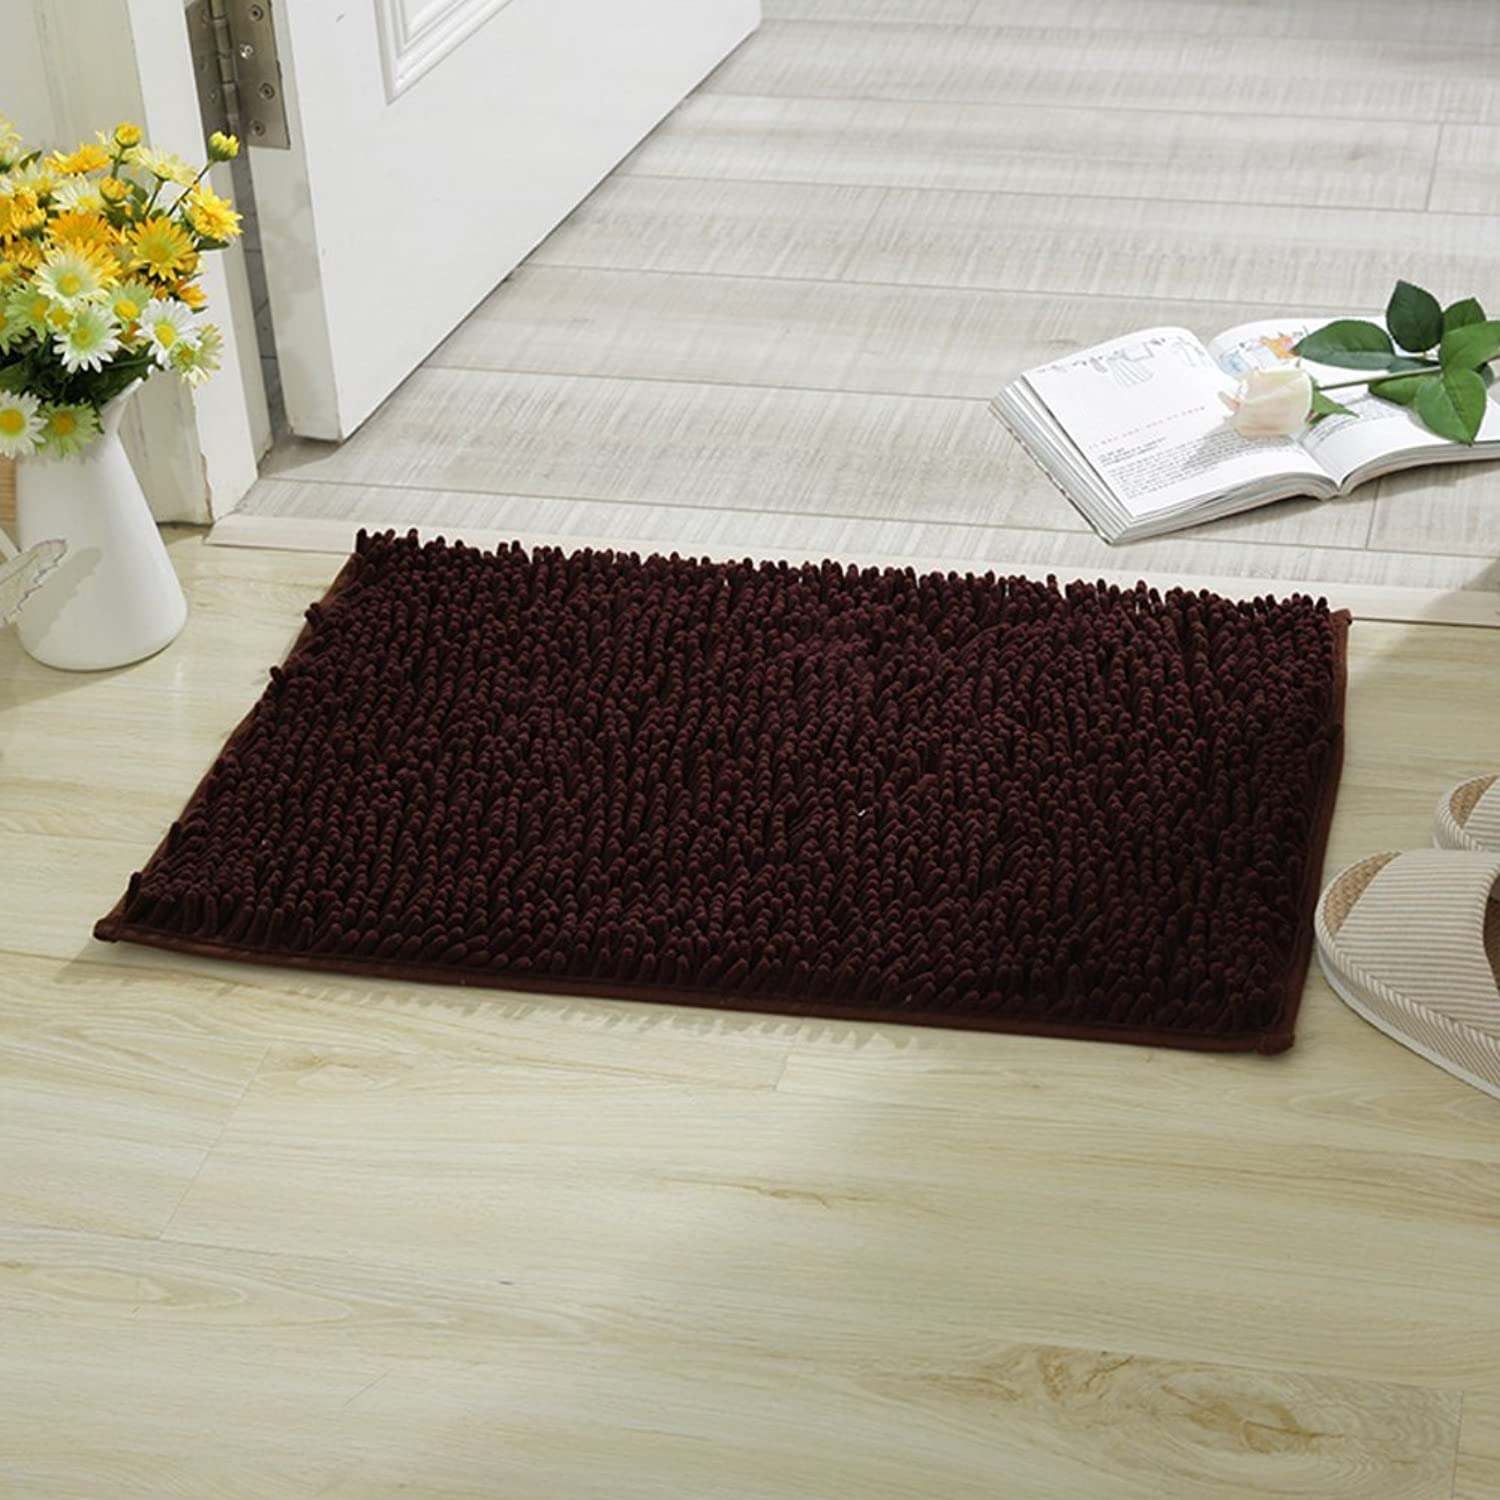 Household mats Toilets Bathroom mats Doormat Bathroom Non-Slip mats Door mats in The Hall Water-Absorbing mat at The Door-Q 80x120cm(31x47inch)